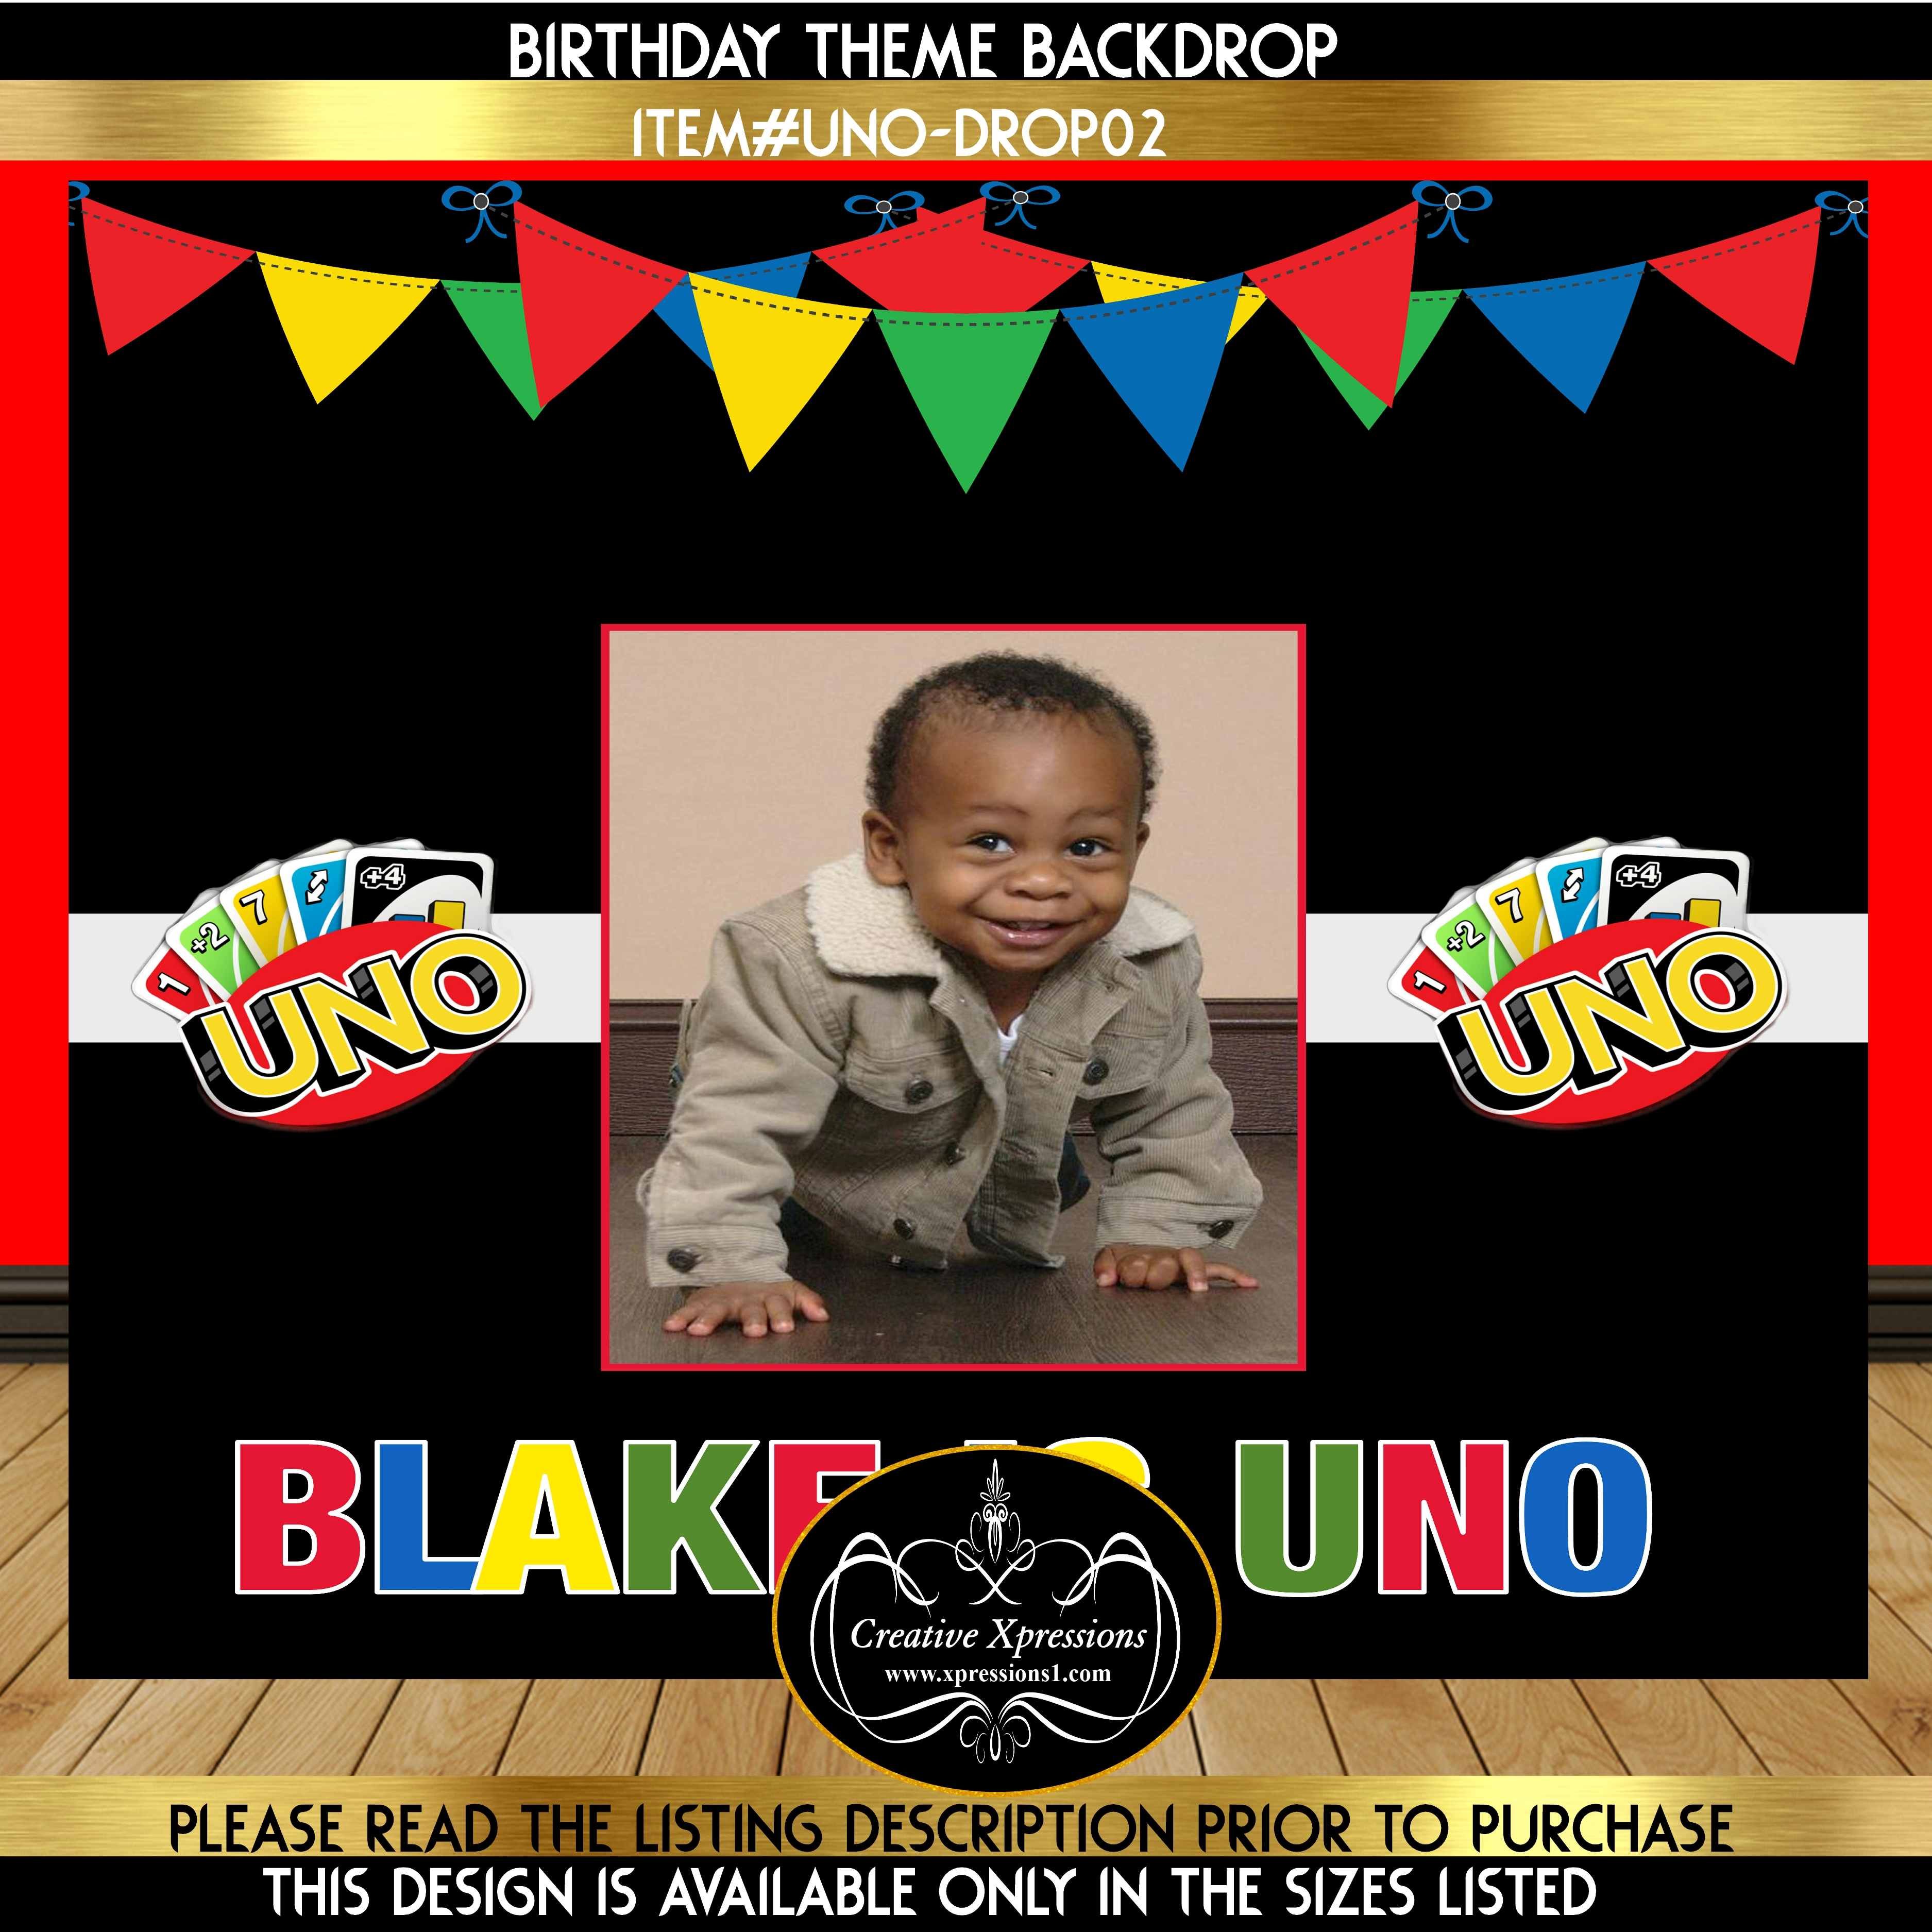 Uno Birthday Backdrop with Photo